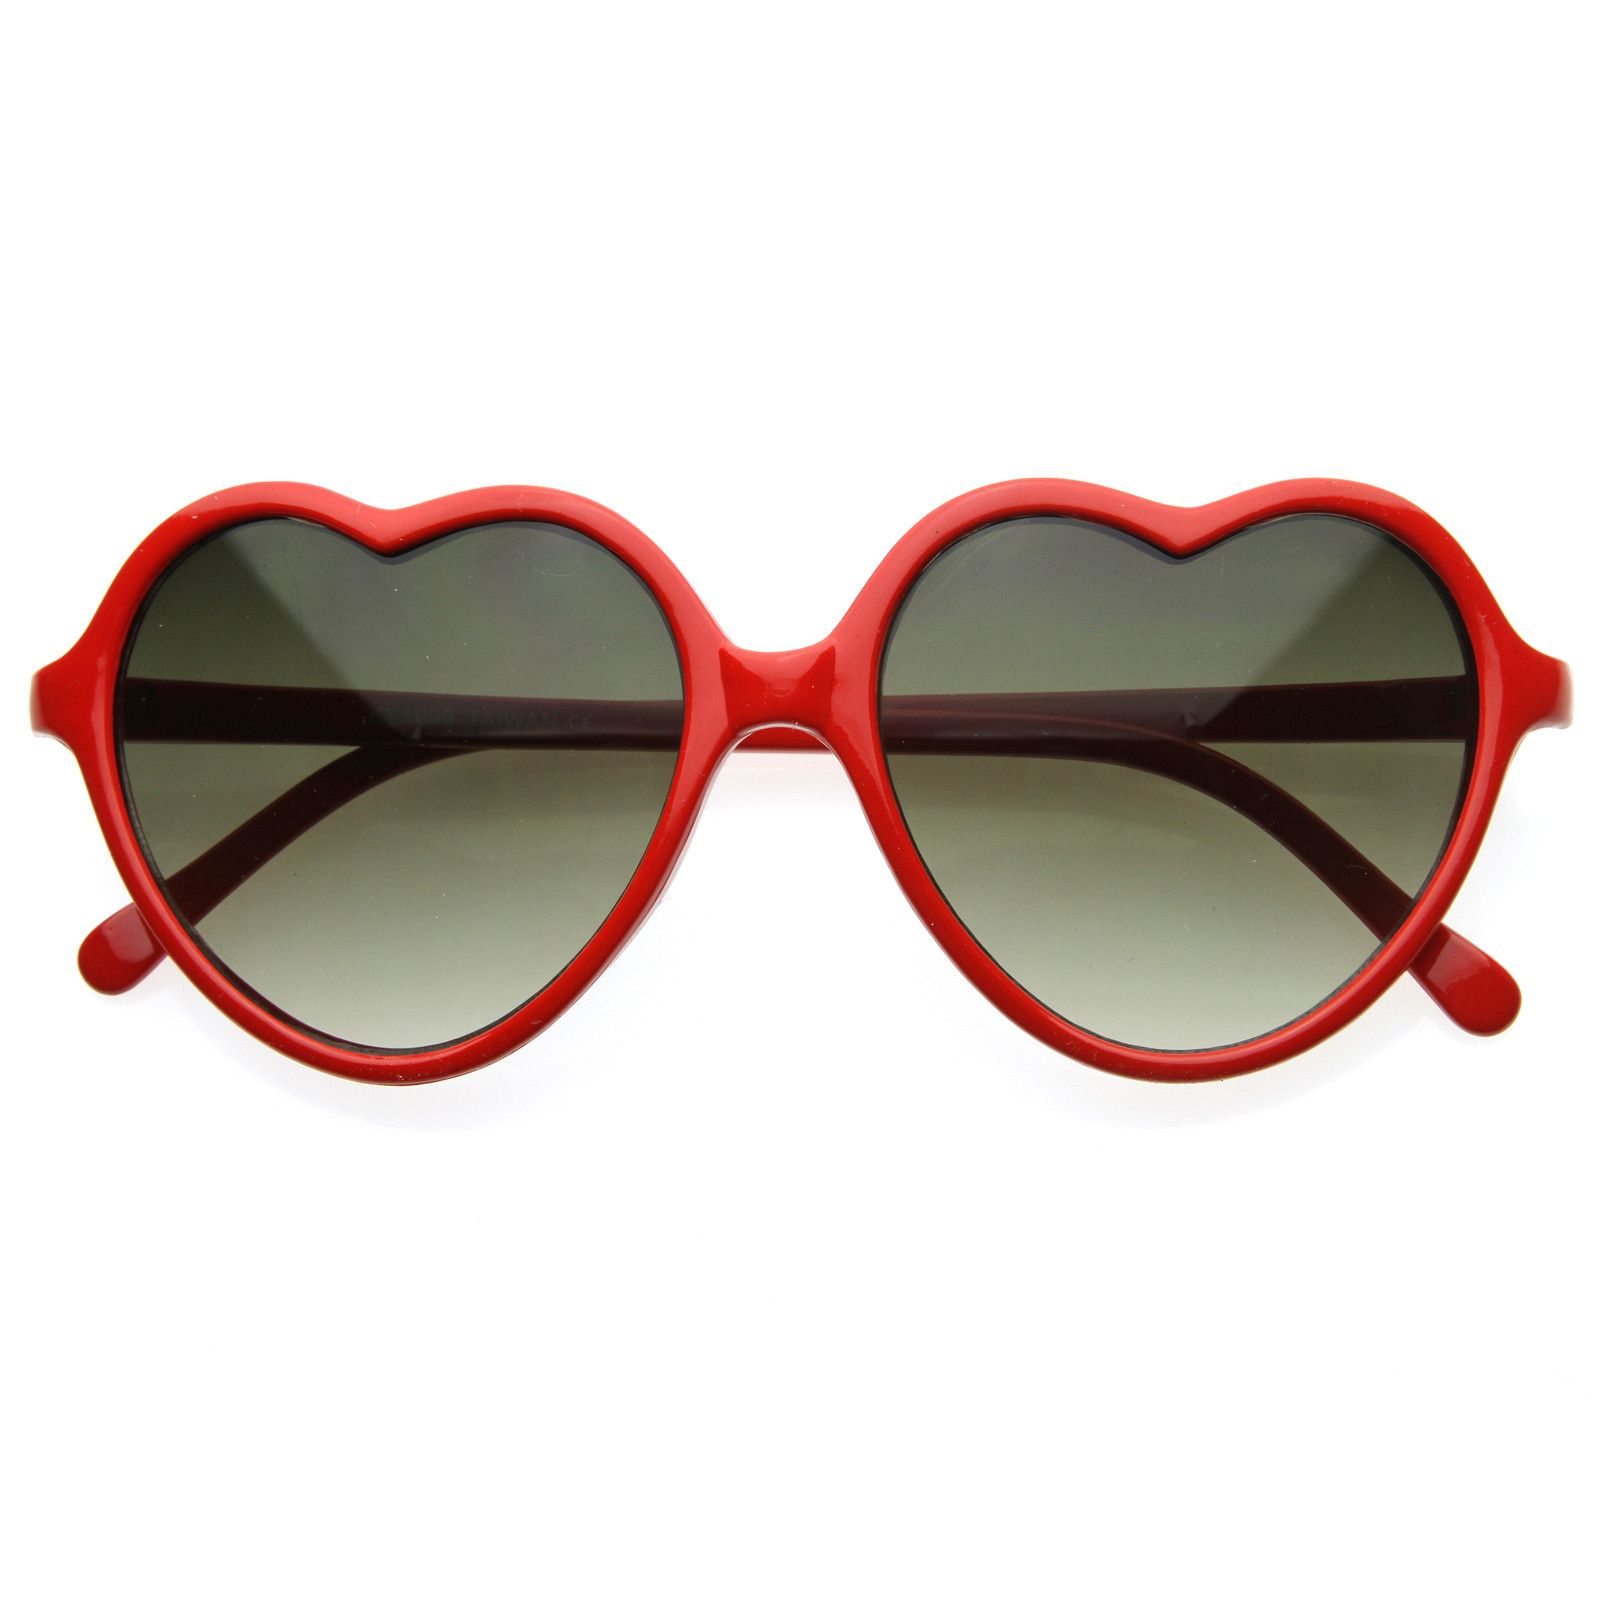 2eee79c43a Large Thin Cute Womens Heart Shape Fashion Sunglasses 8468 from zeroUV